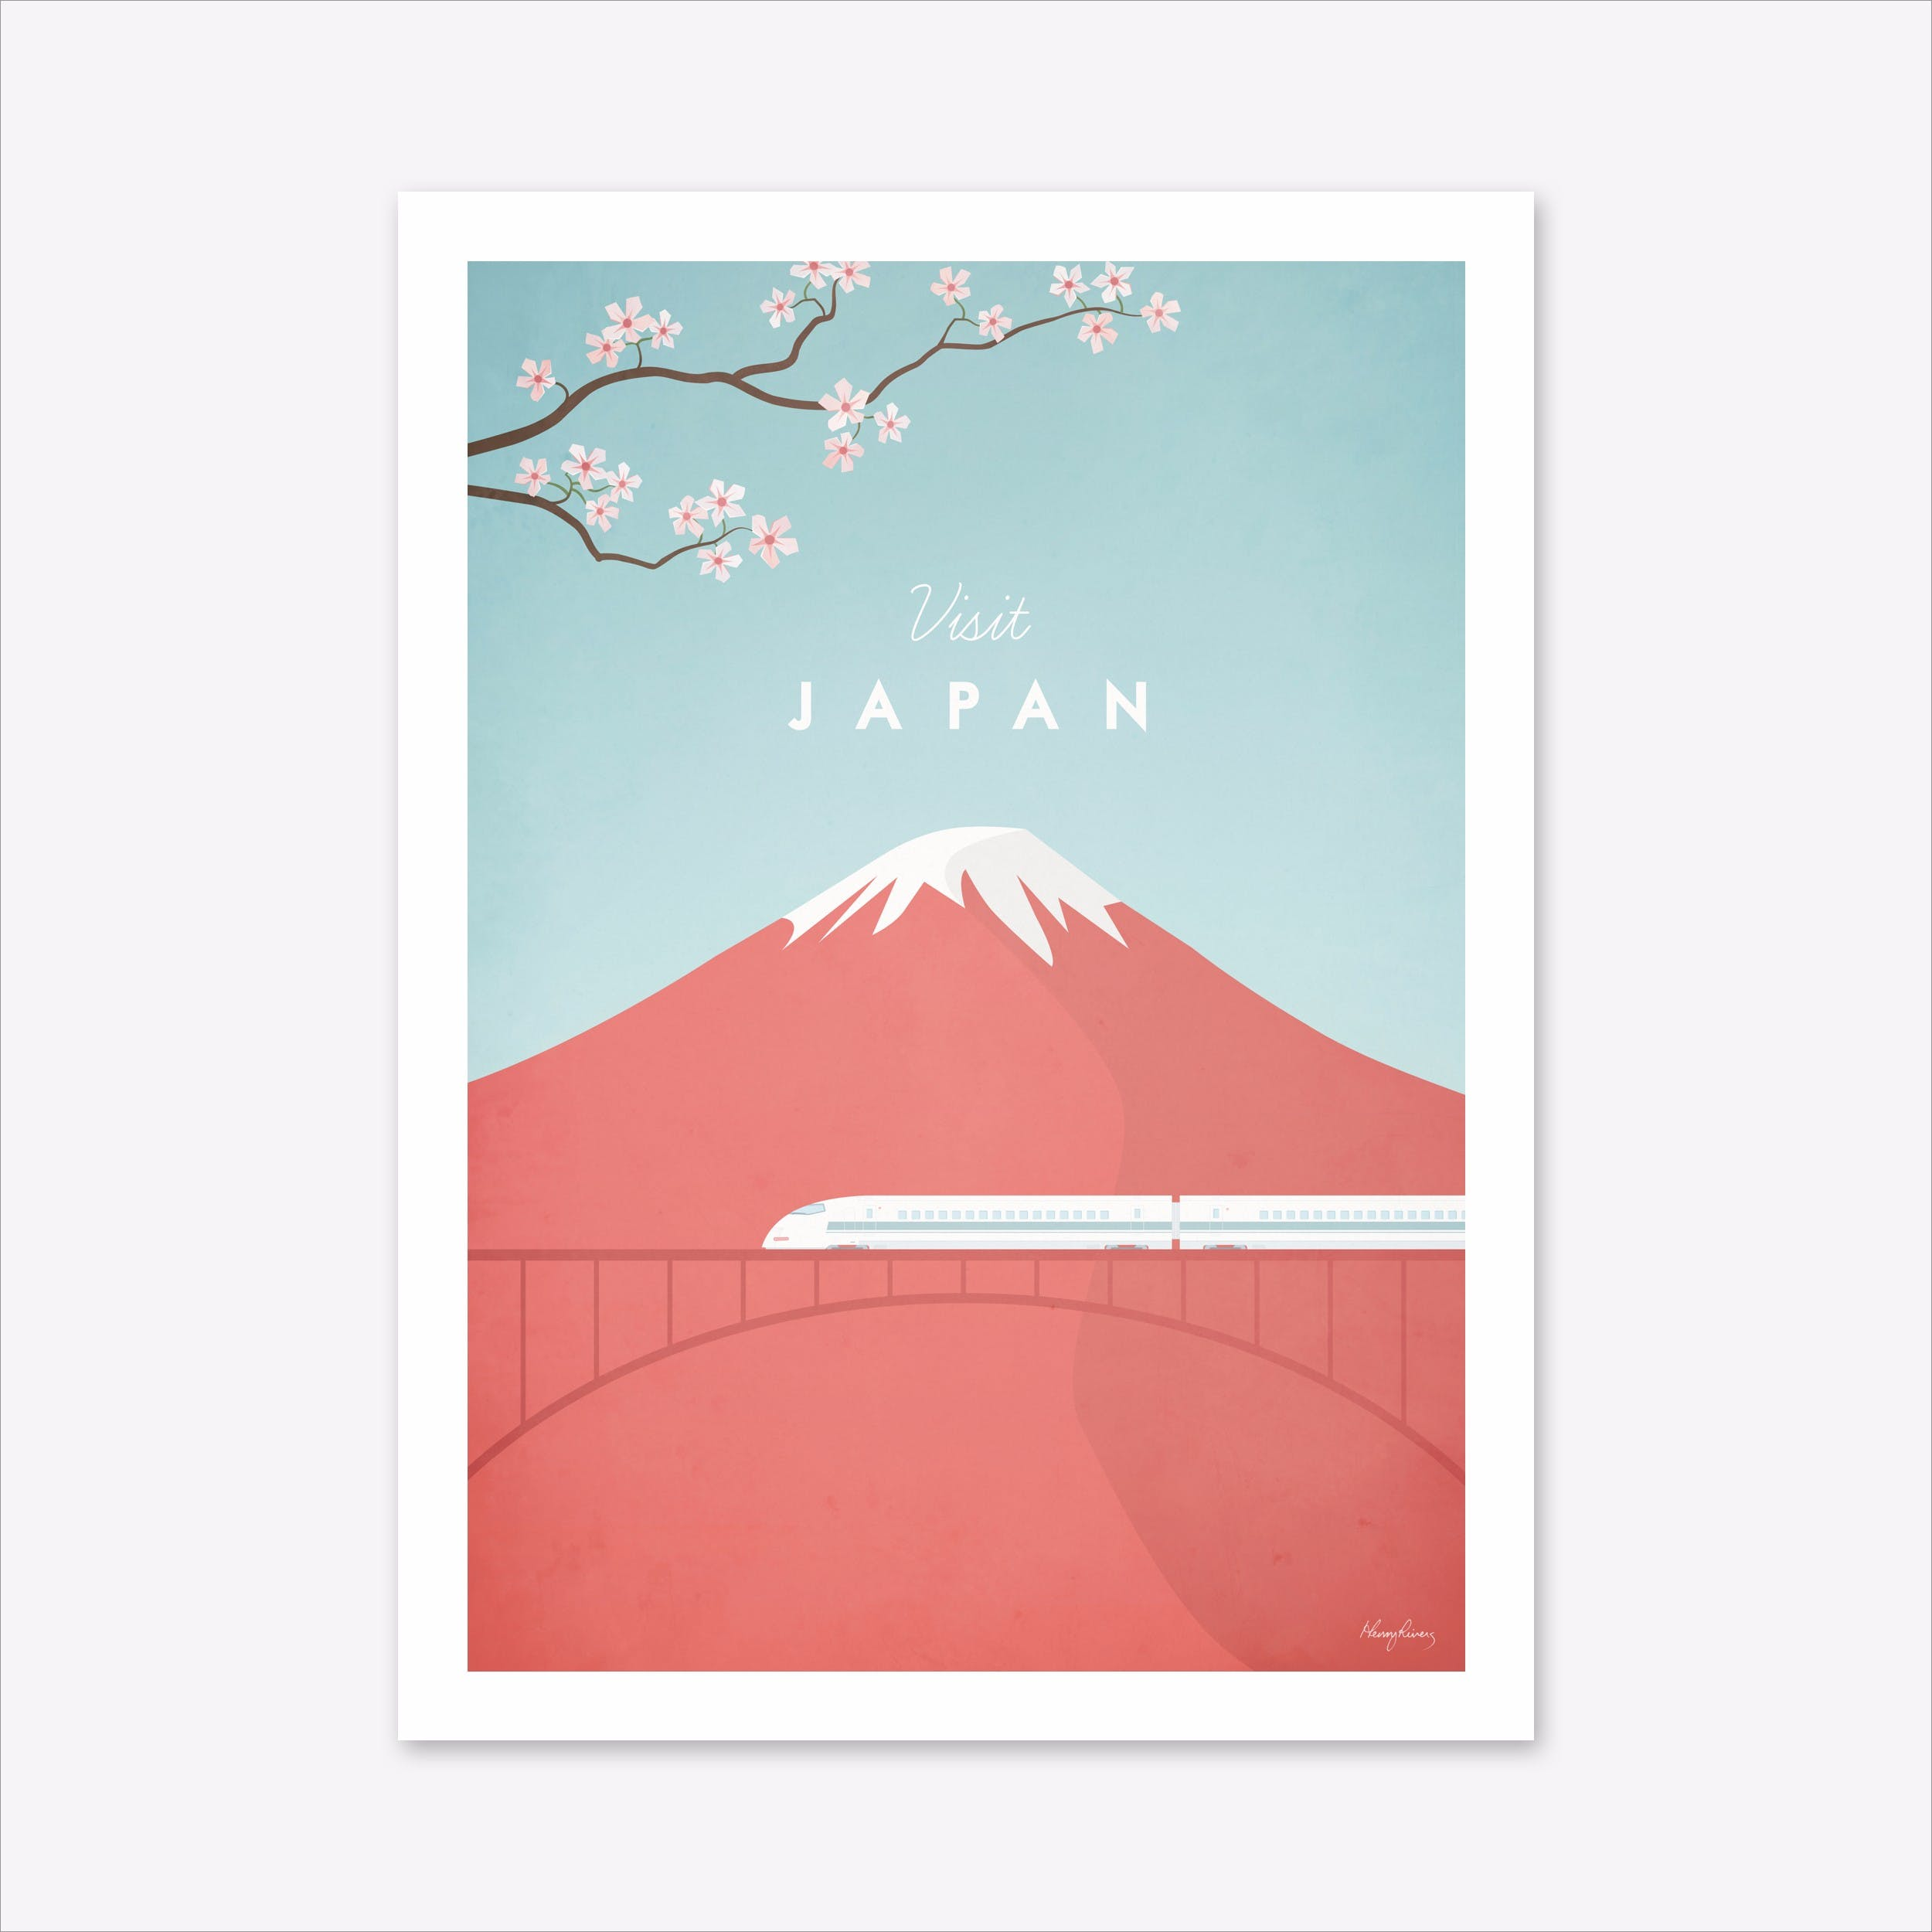 Visit japan art print by travel poster co fy